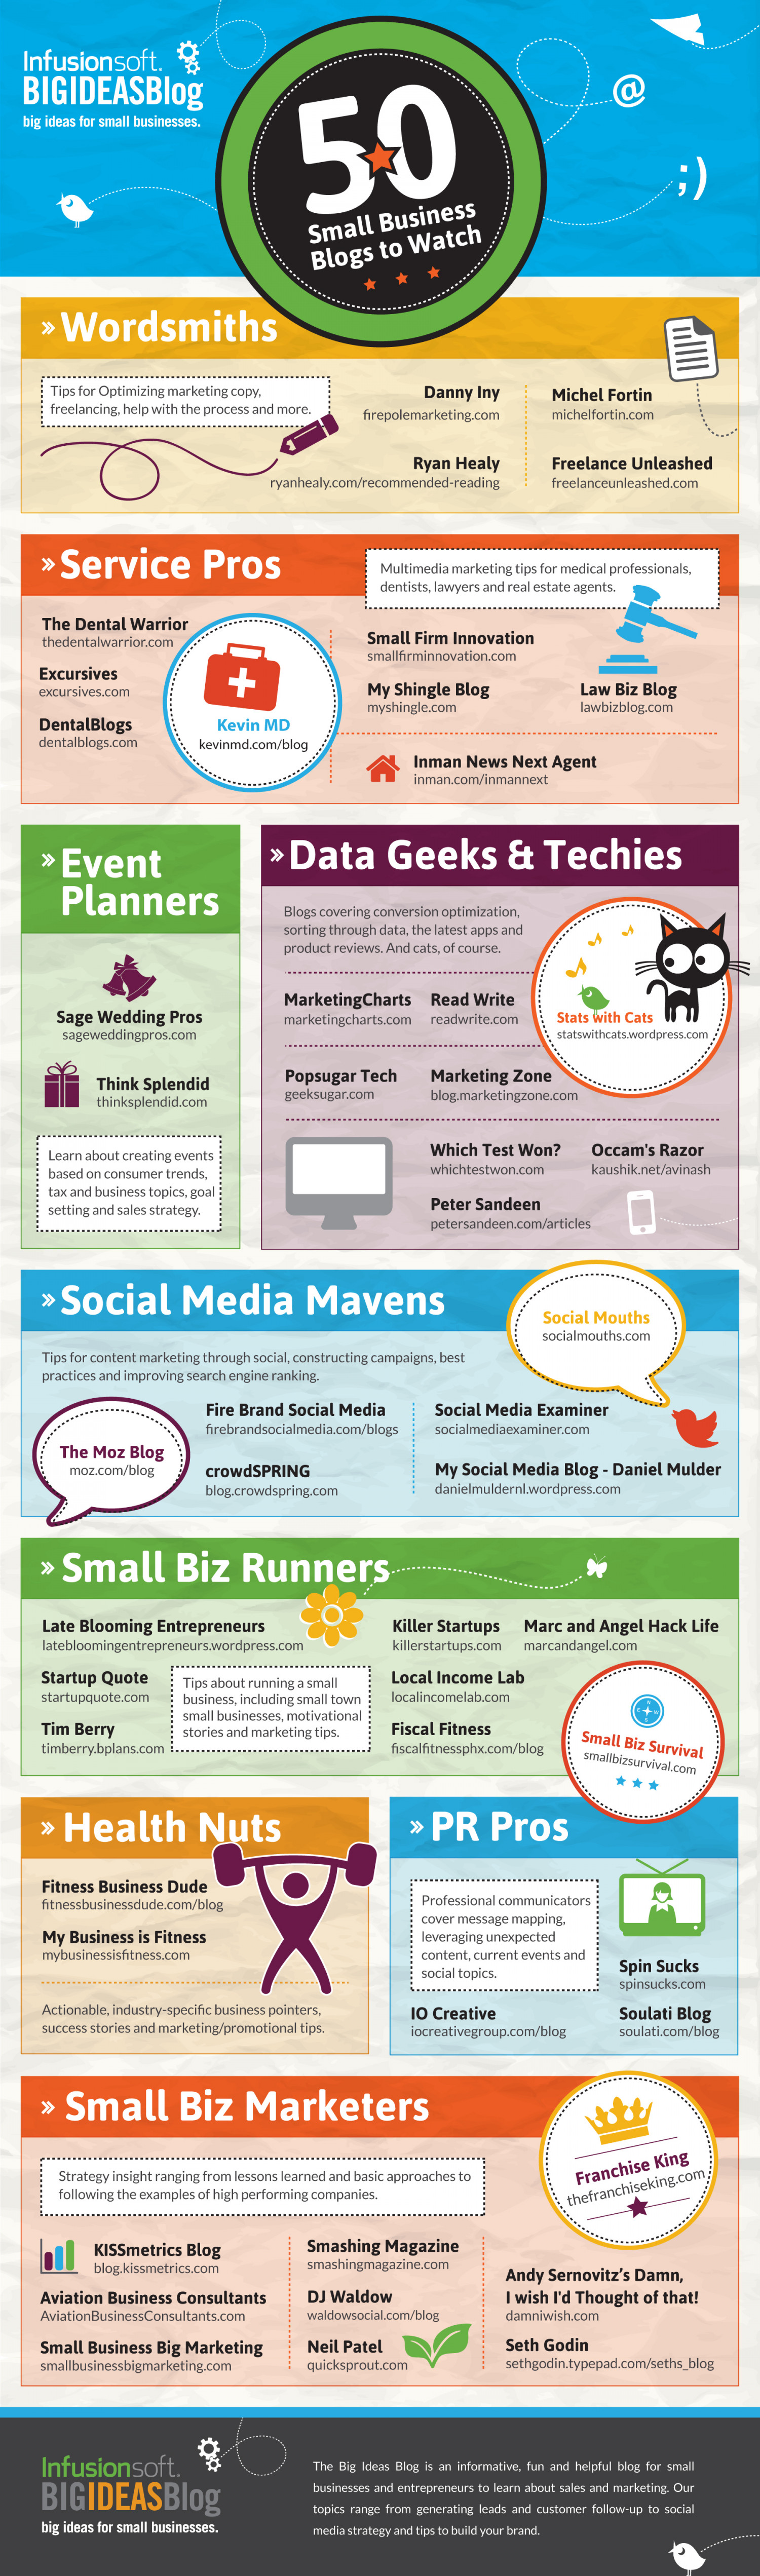 50 Small Business Blogs to Watch Infographic